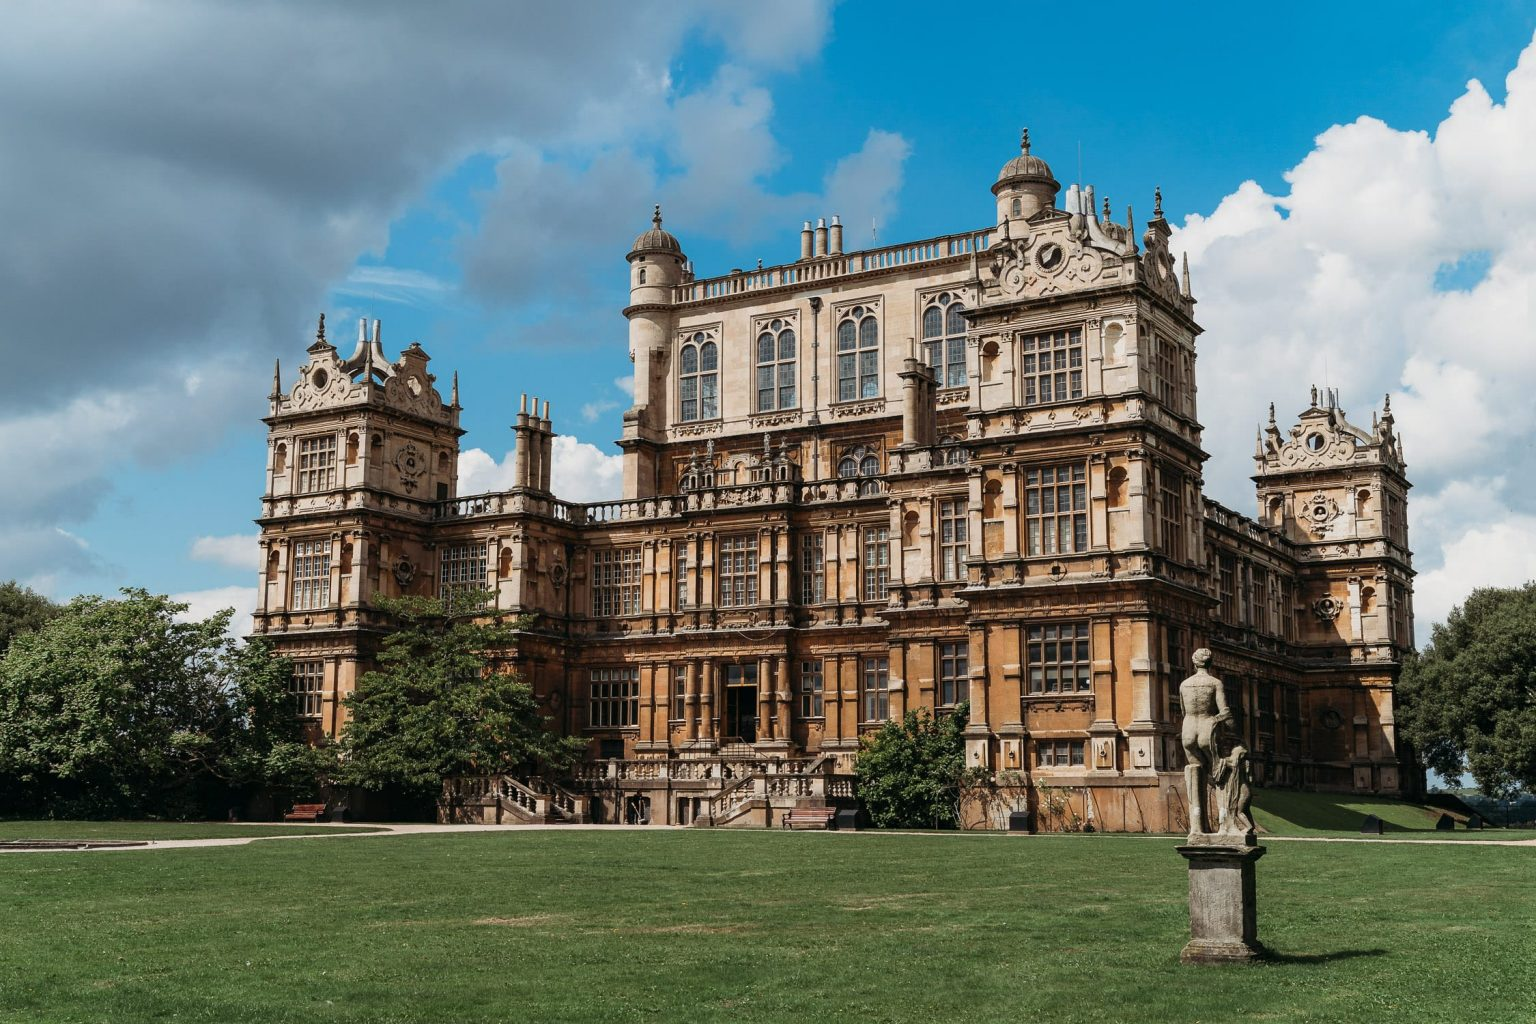 Stunning photo of Wollaton Hall in Nottingham